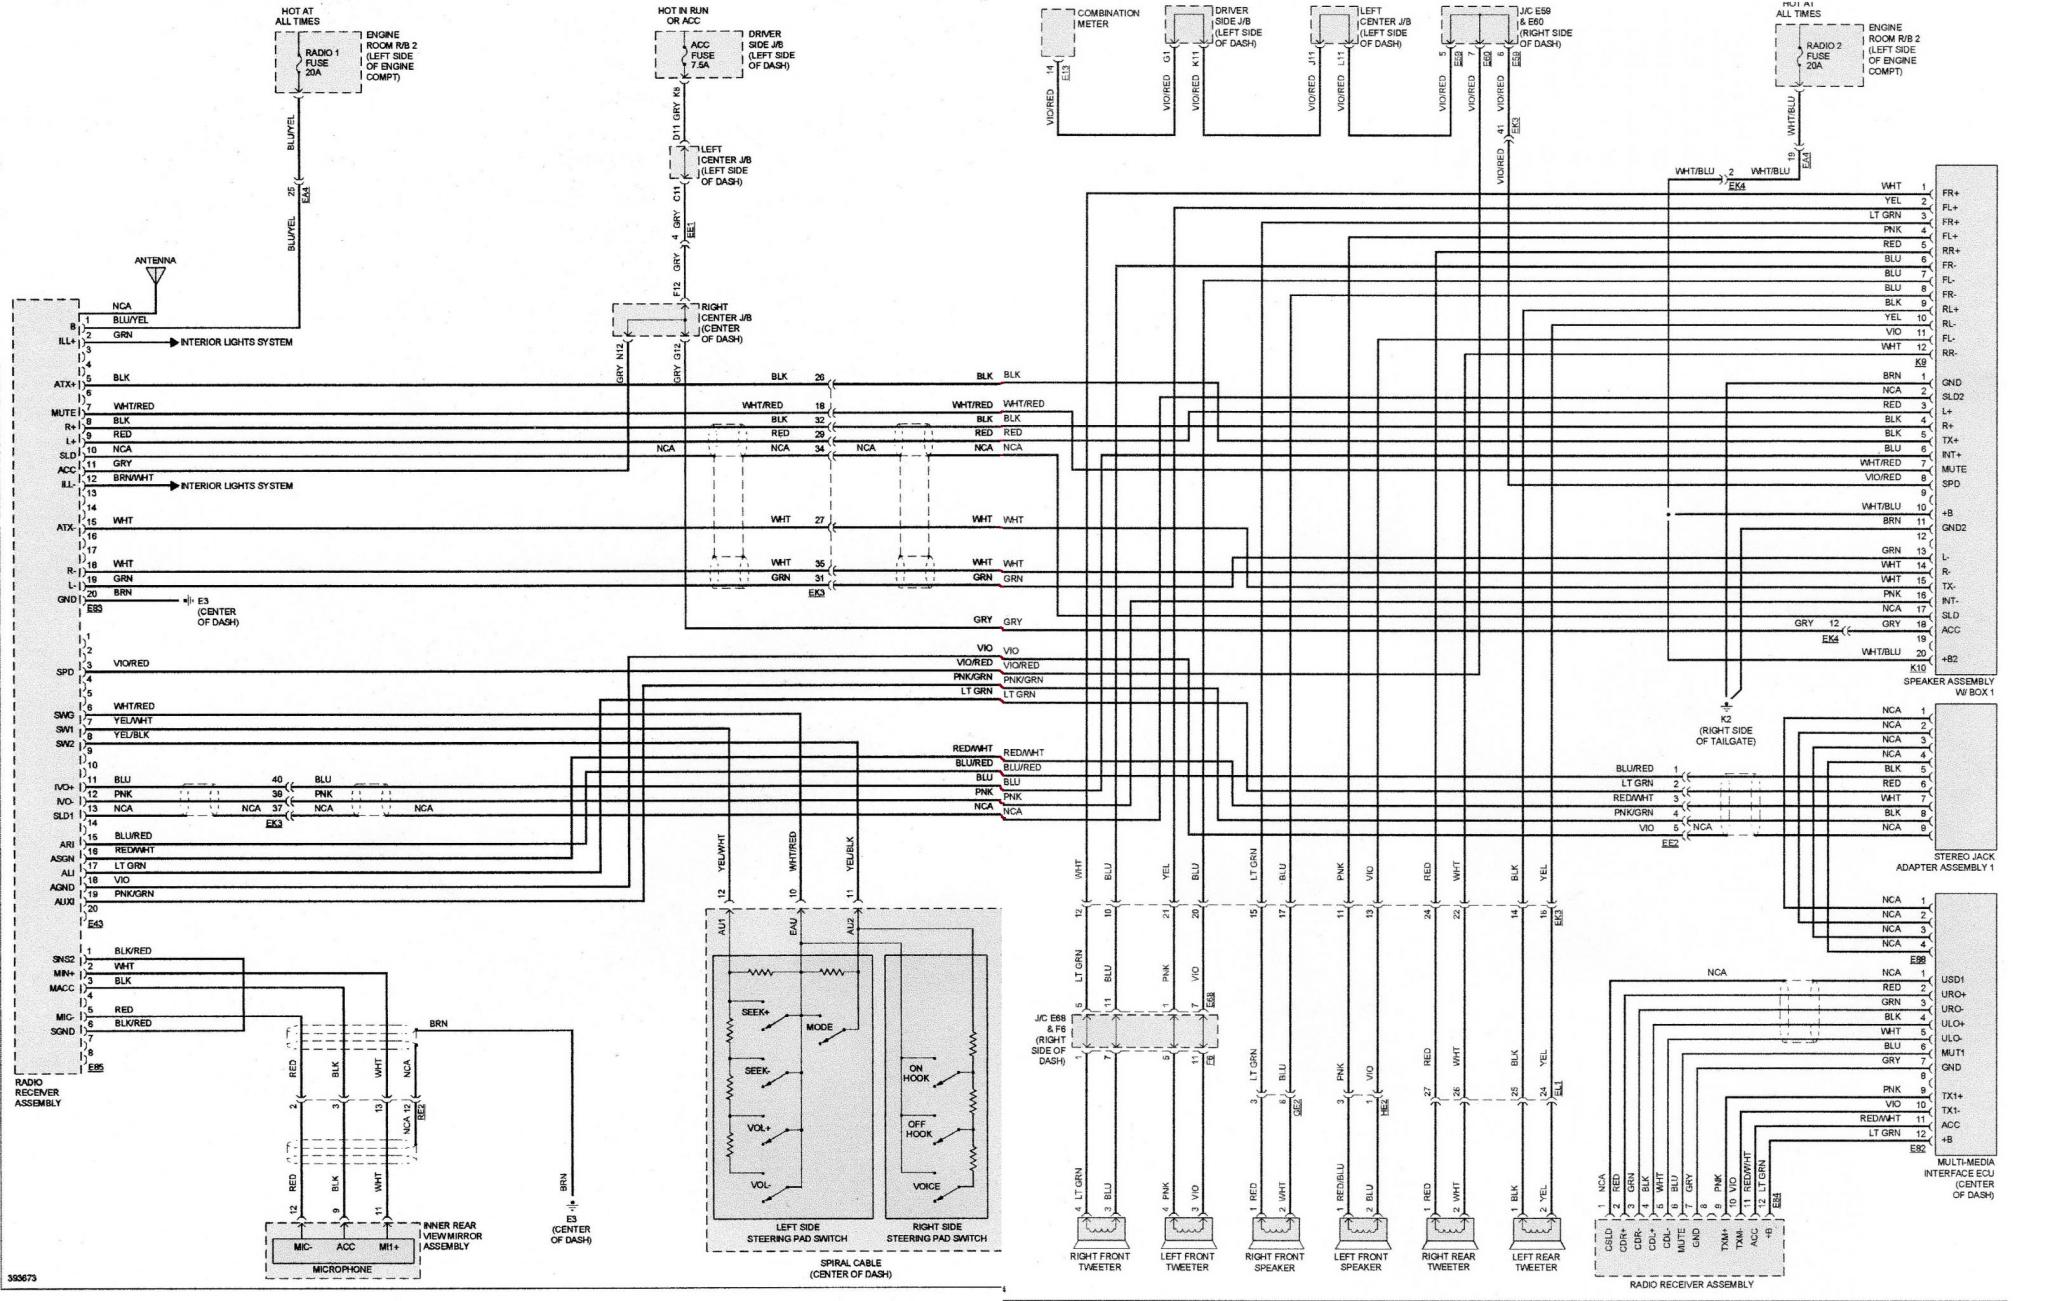 Lincolin as well Mazda Car Stereo Wiring Diagram Harness Pinout Connector in addition Maxresdefault as well Toyota Tundra Engine Wiring Diagrams as well Jbl. on jbl amp wiring diagram